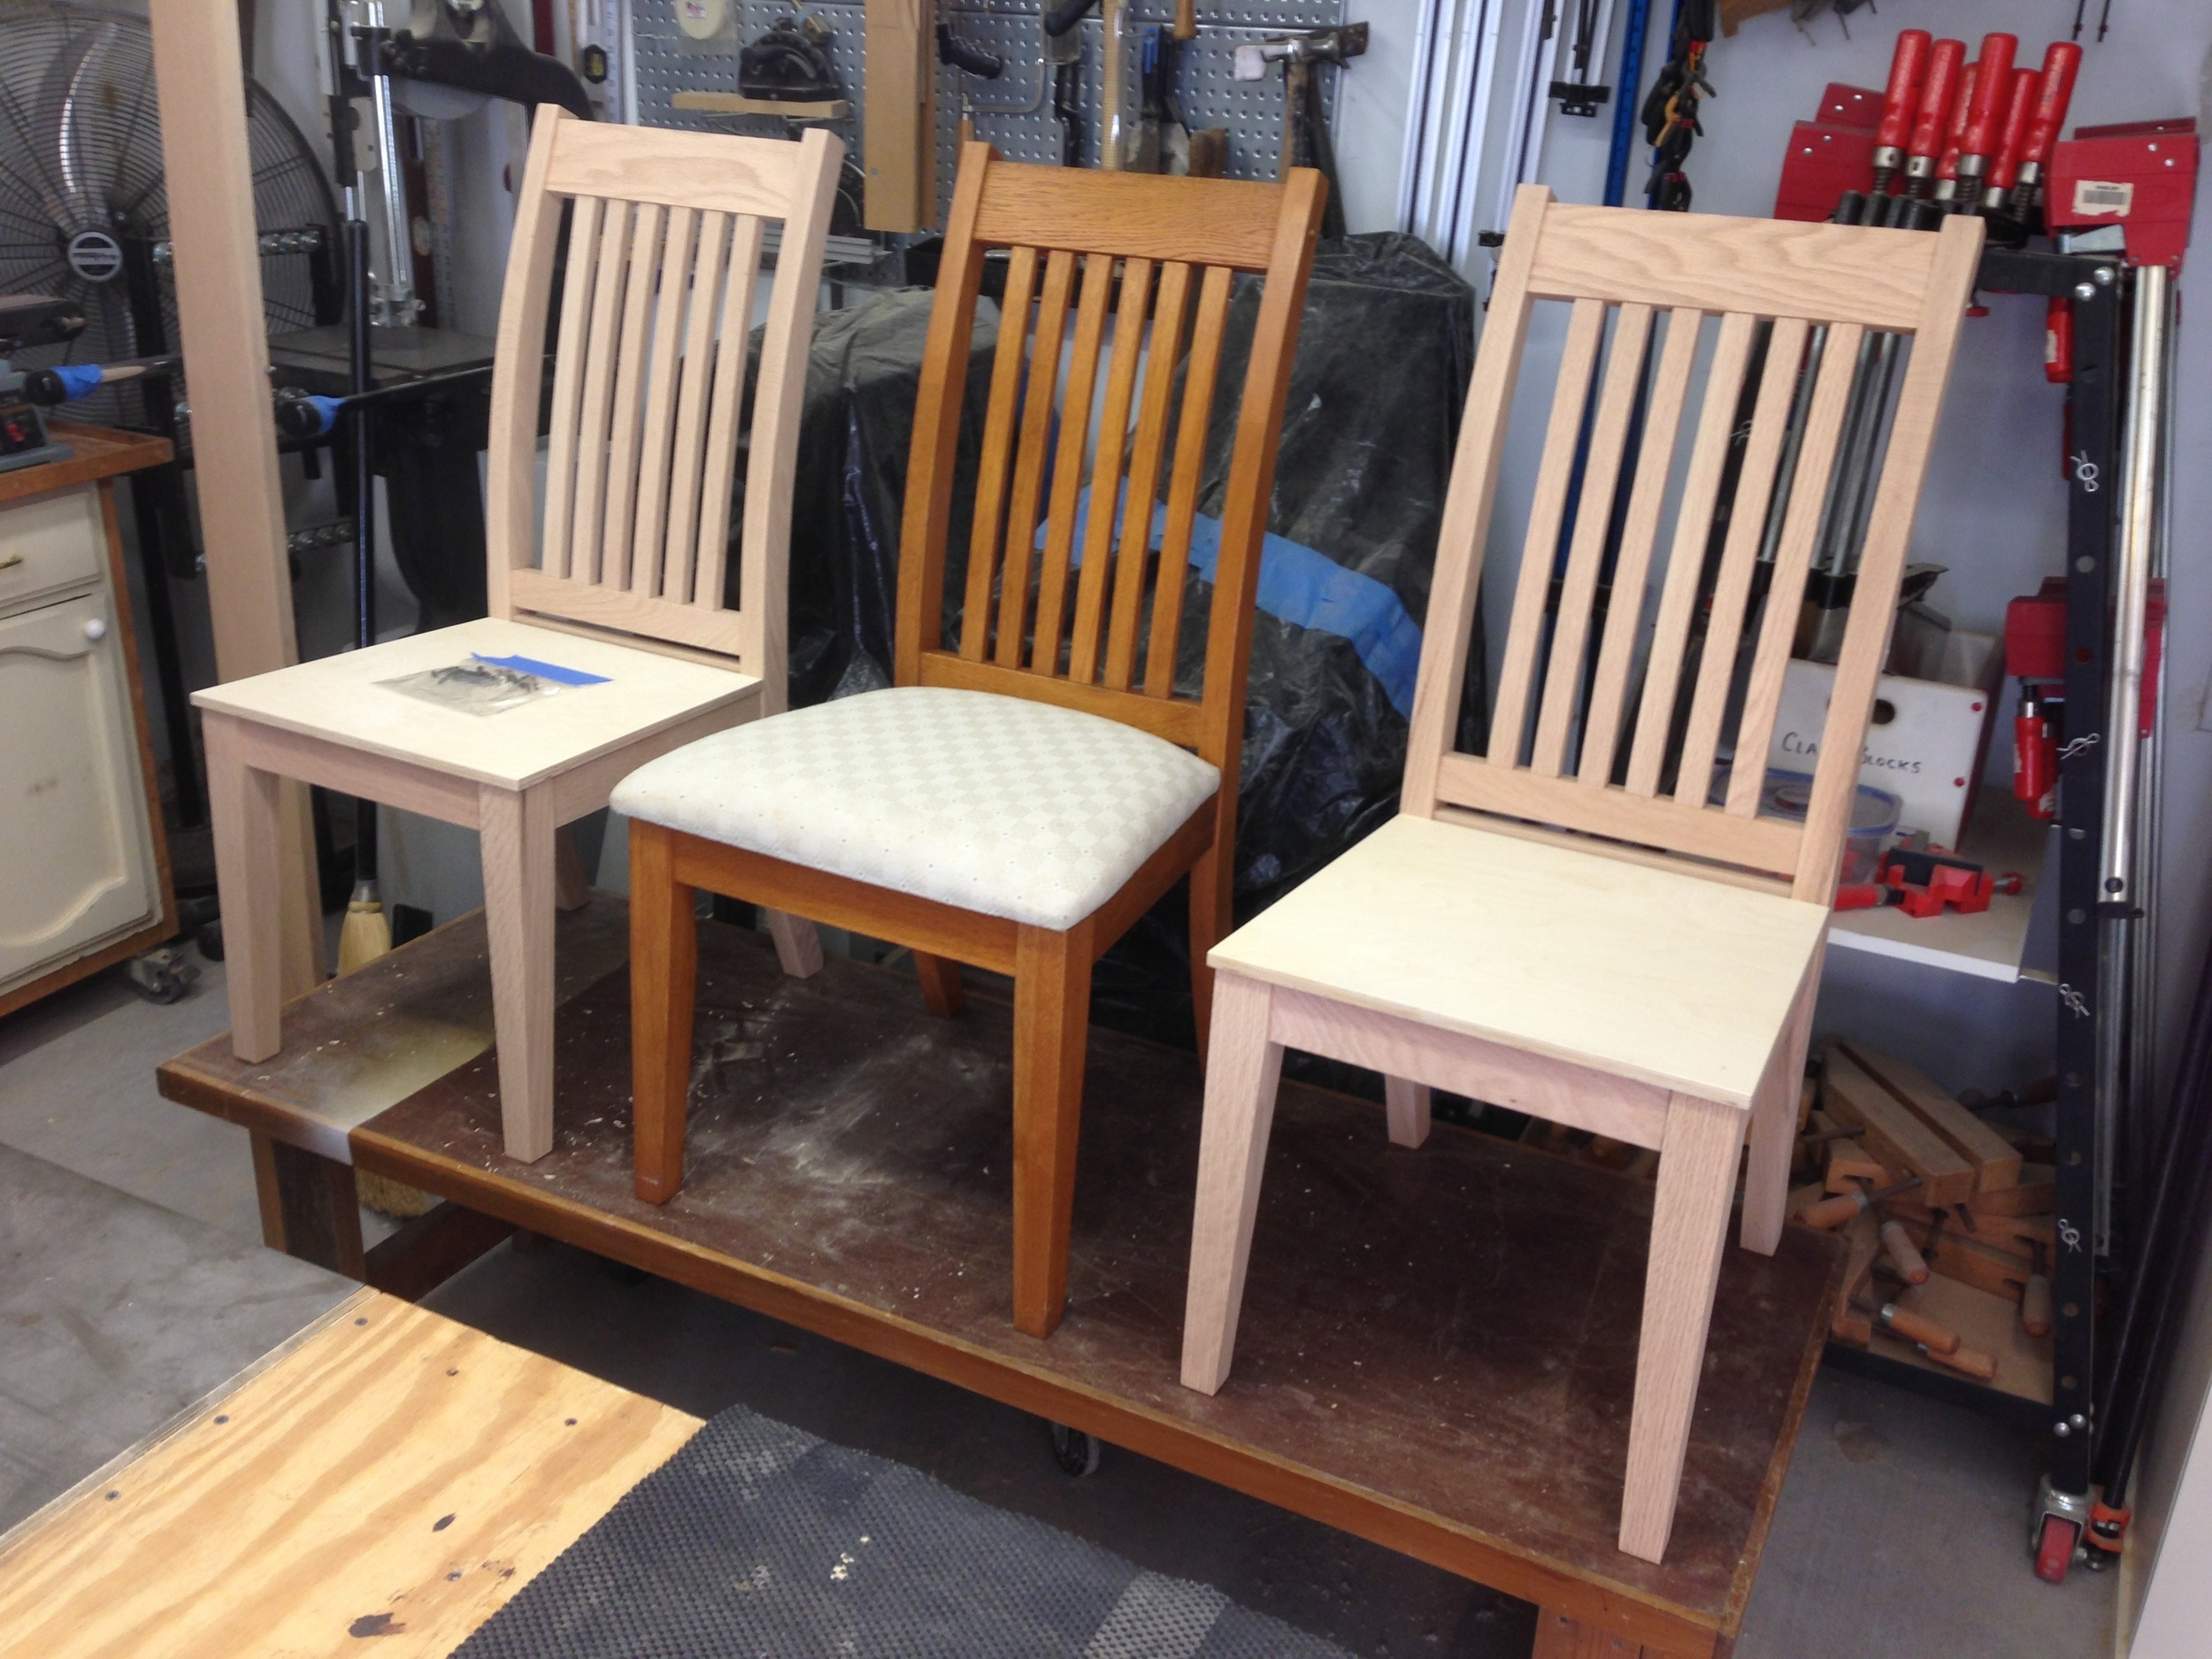 Chair Reproductions - Click photo to see design and build in the shop.